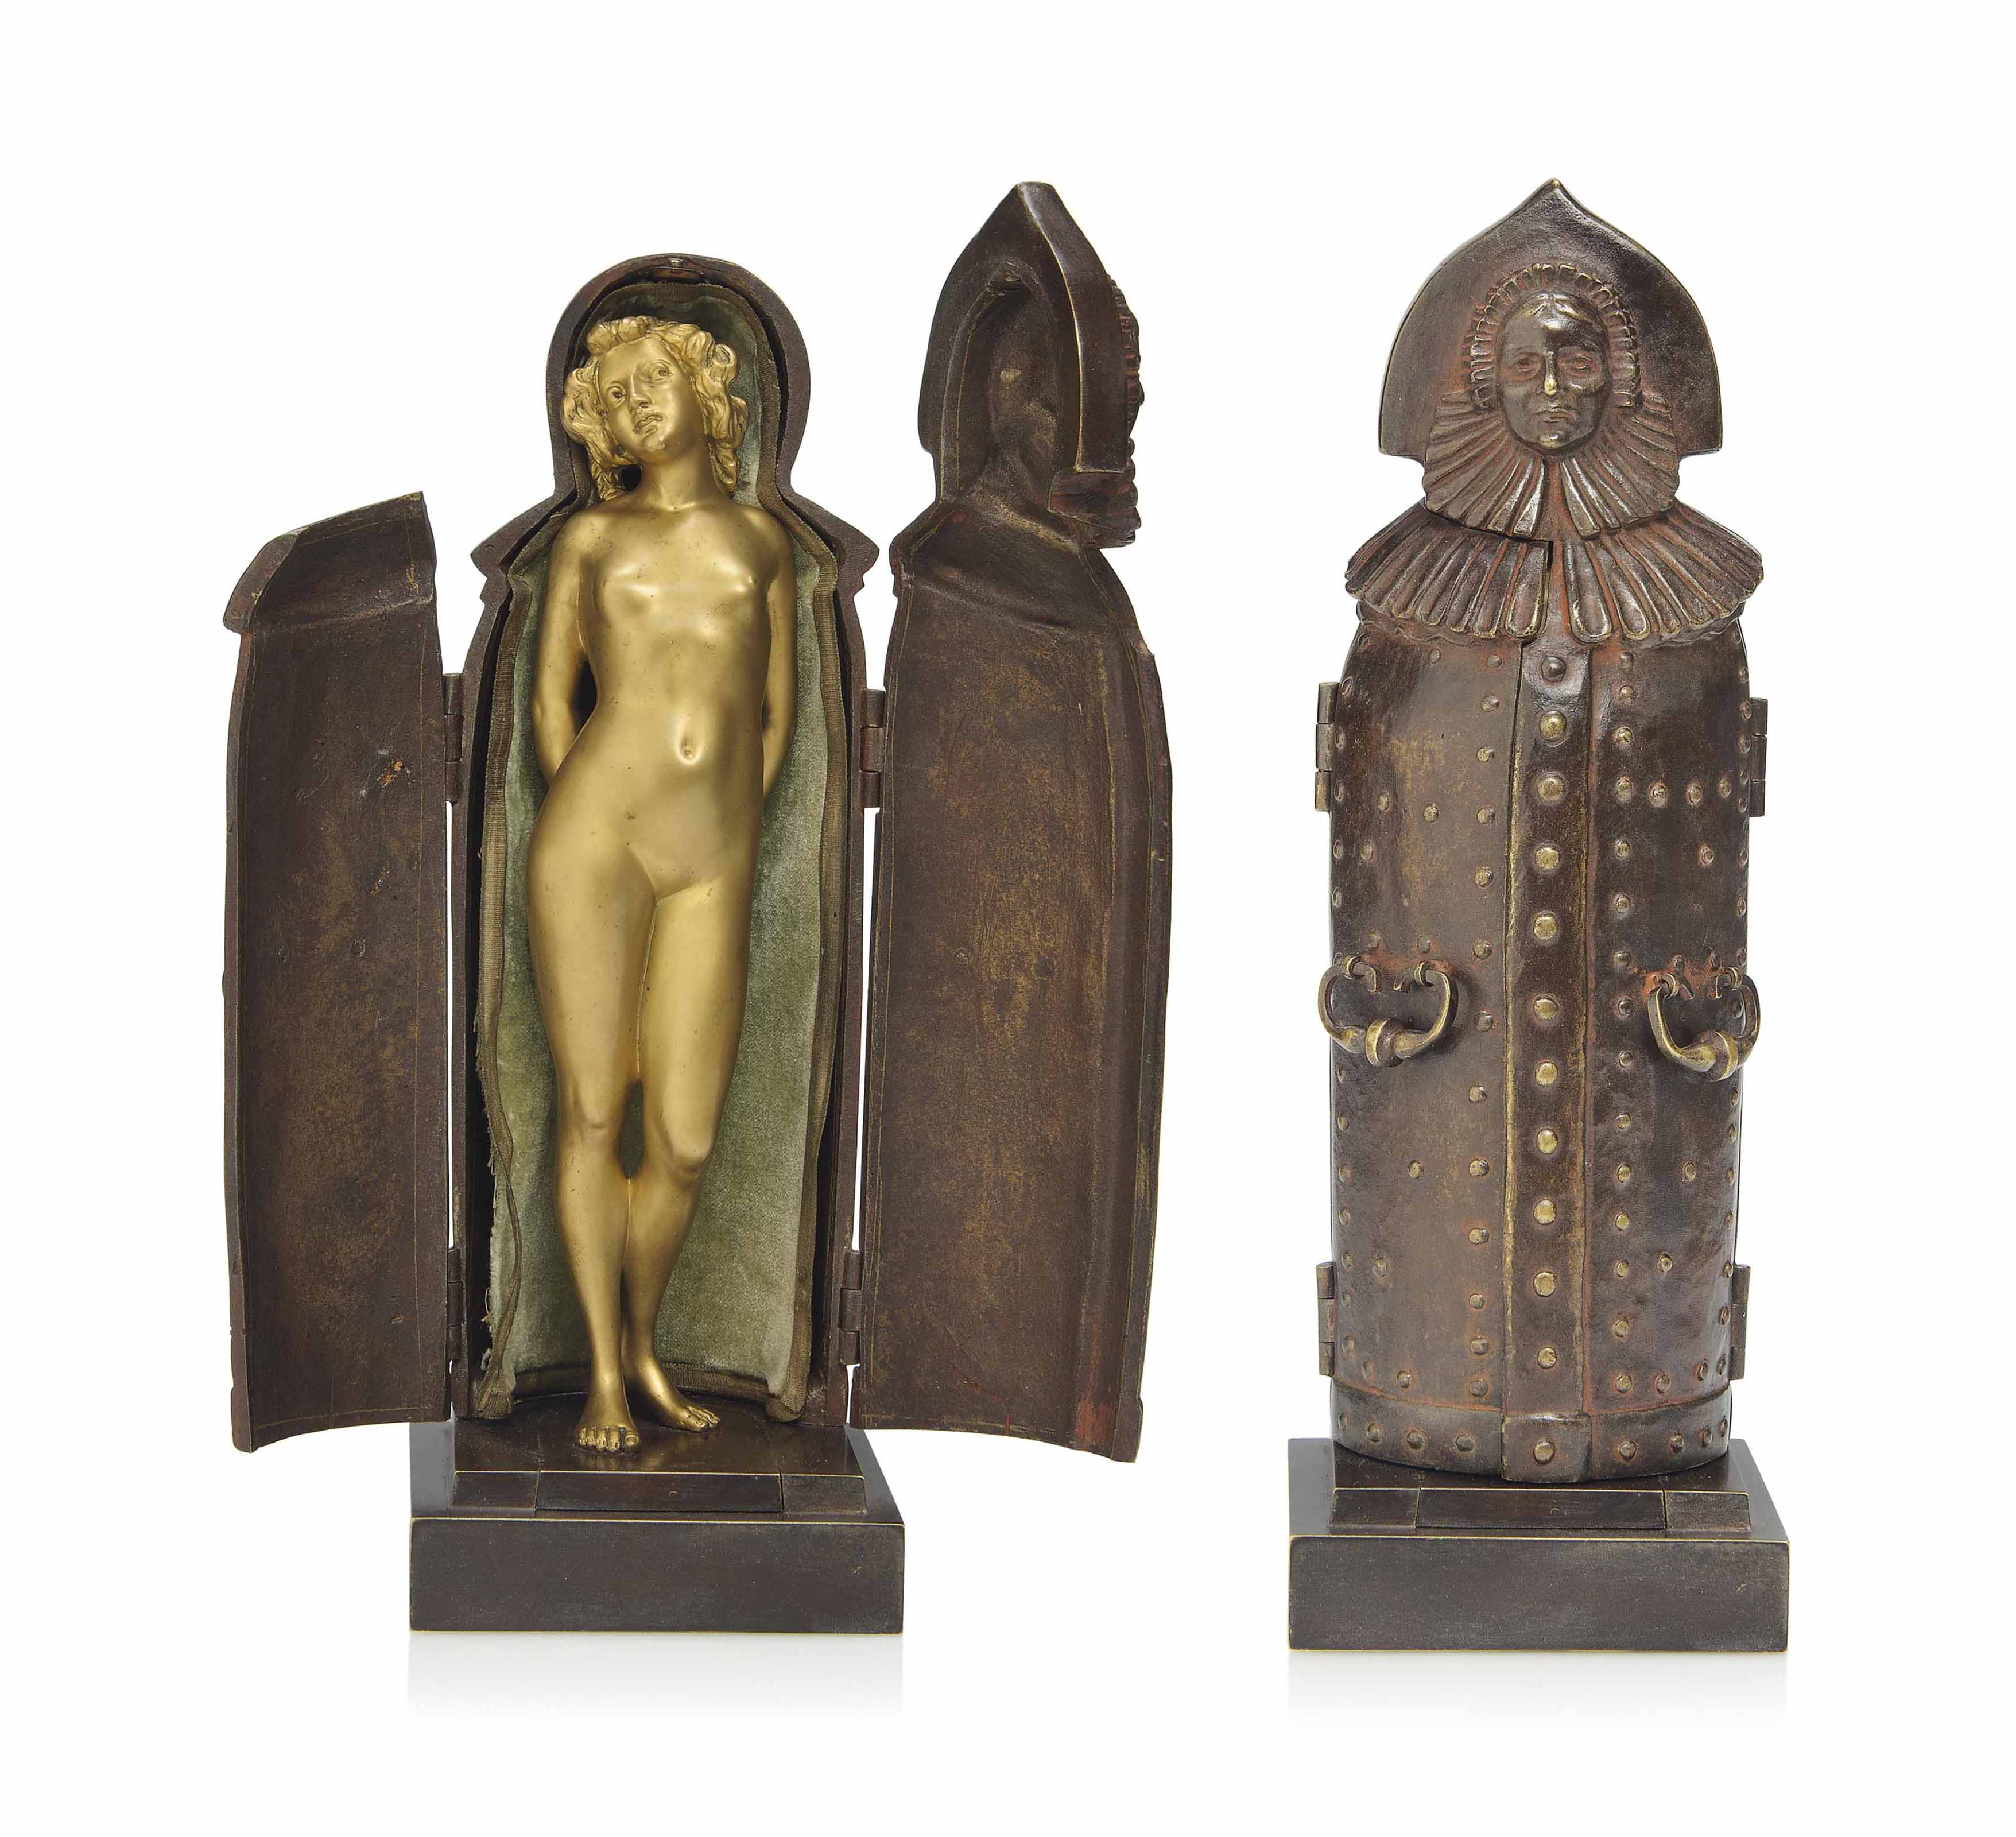 AN AUSTRIAN EROTIC COLD-PAINTED BRONZE FIGURE OF THE 'IRON MAIDEN'